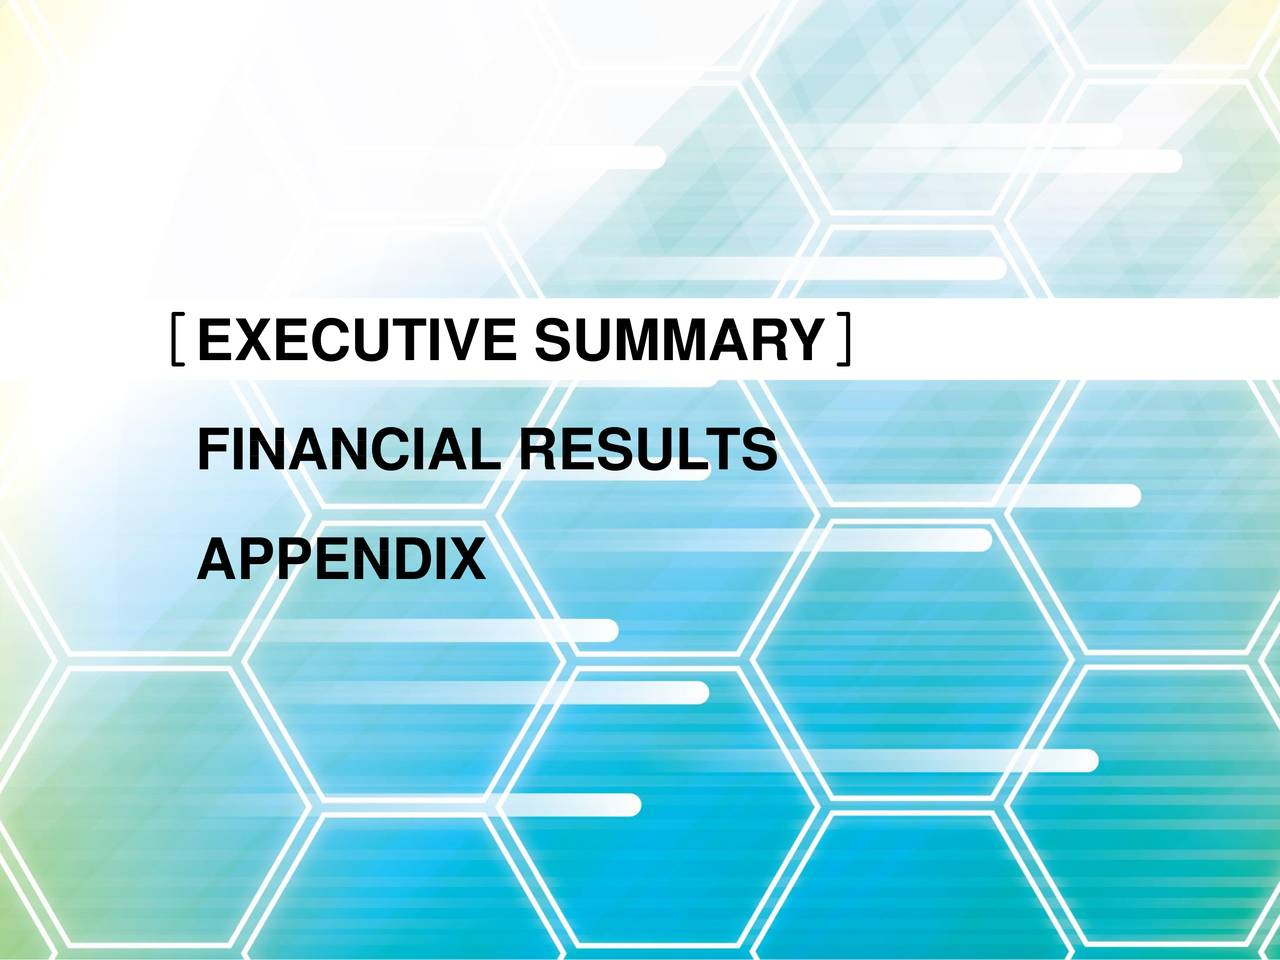 FINANCIAL RESULTS APPENDIX